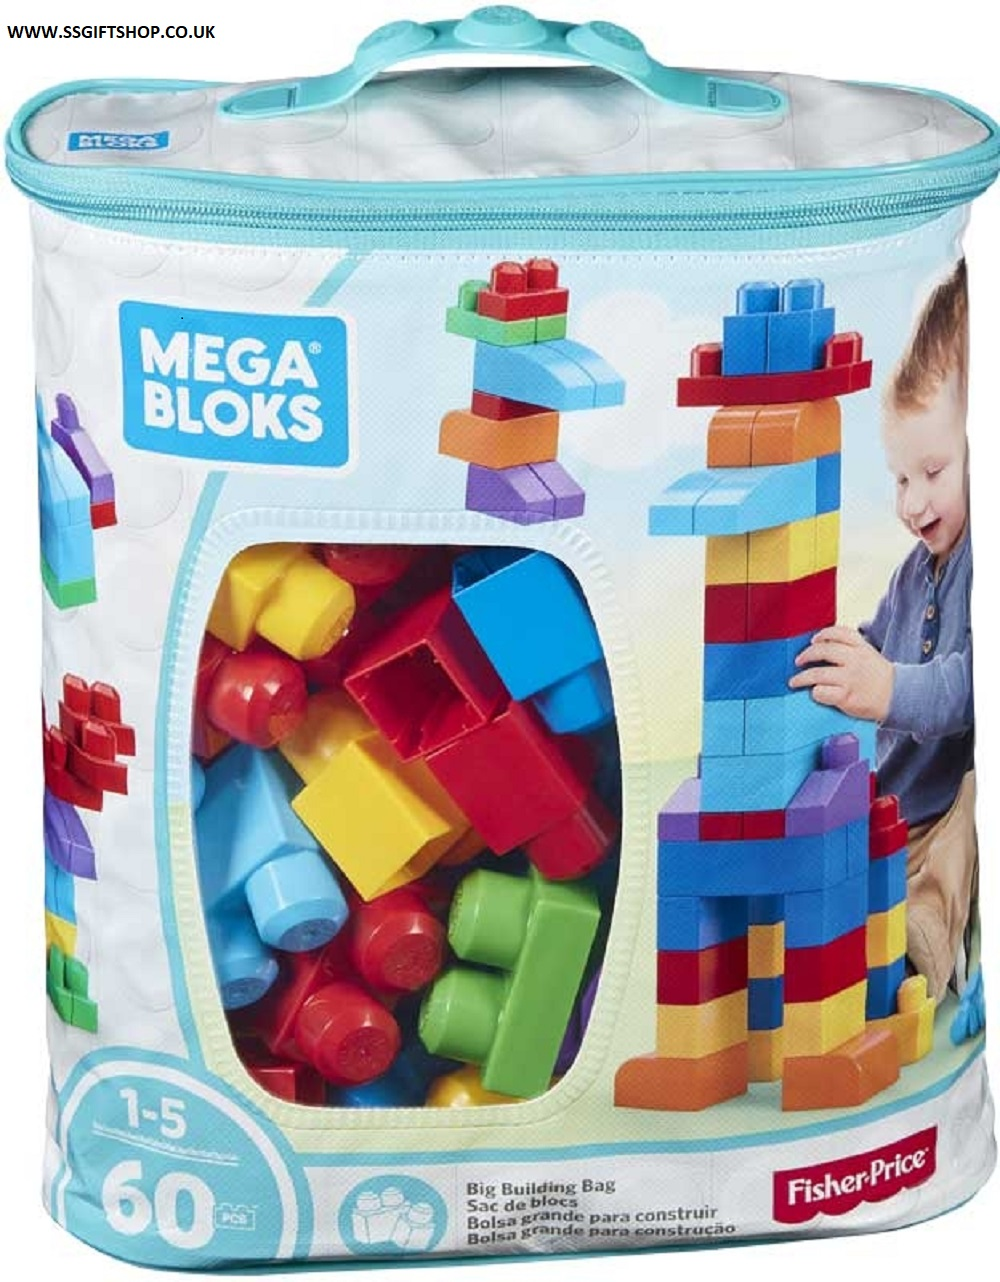 MEGA BLOKS SET 60PC BLUE